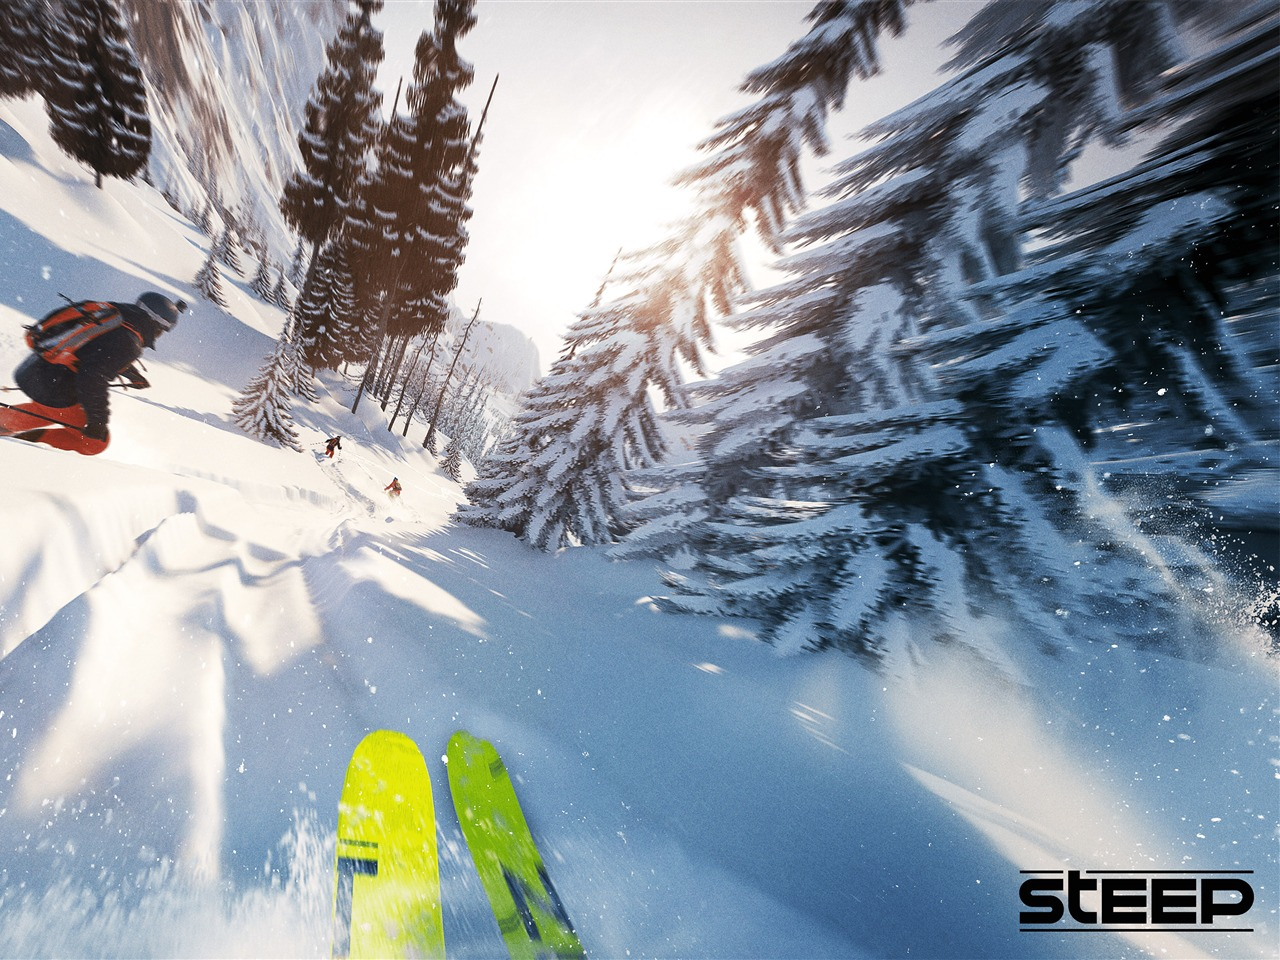 Ski competition Steep Game 4K - 1280x960 wallpaper download